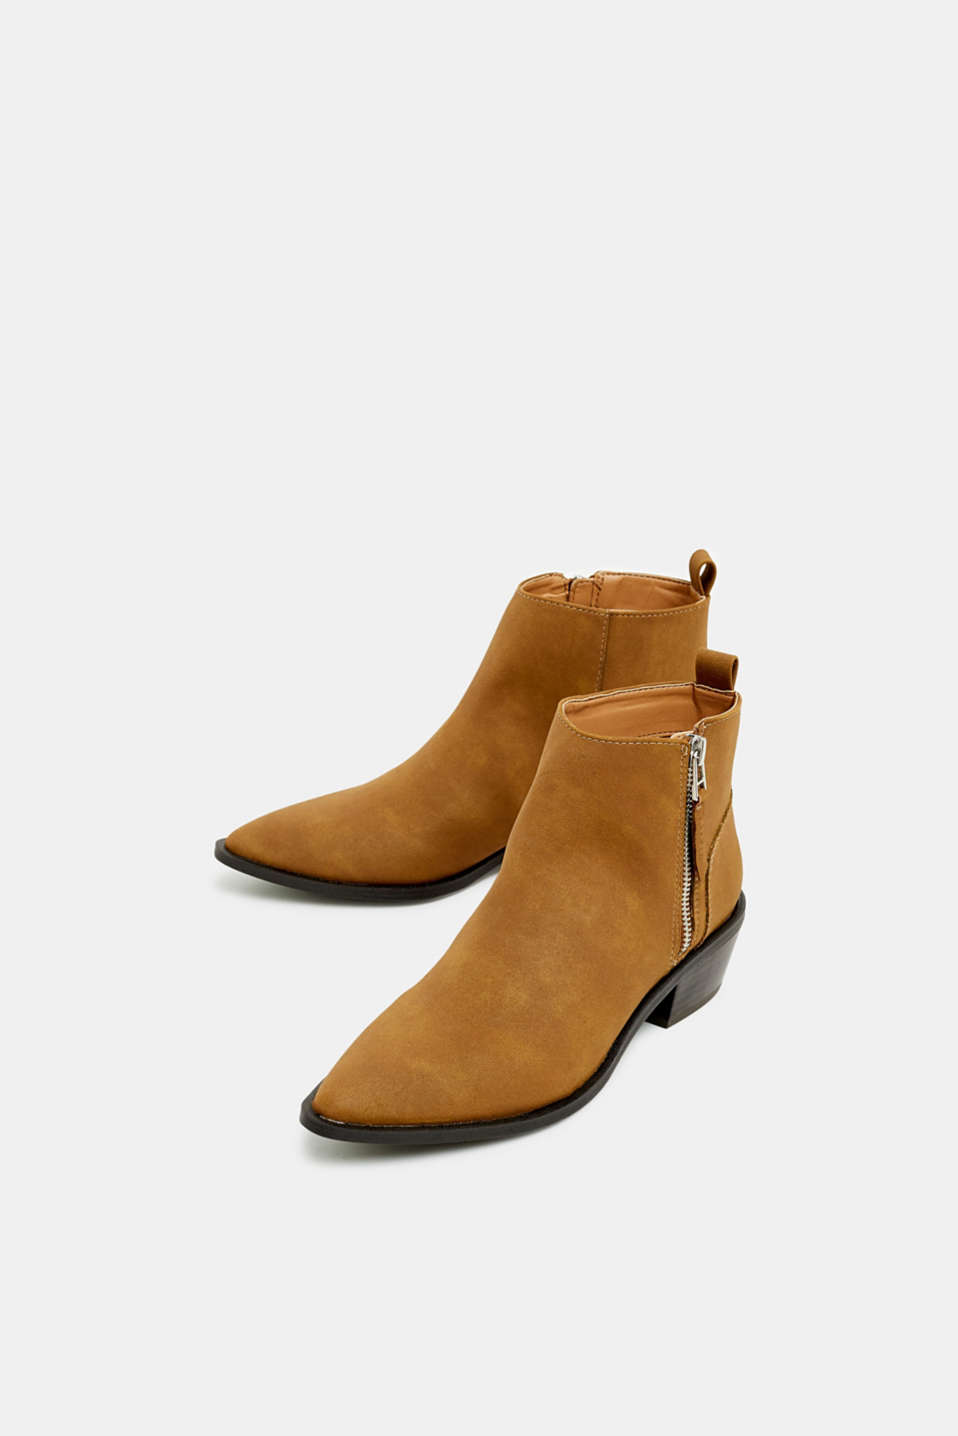 Faux nubuck leather ankle boots, TOFFEE, detail image number 1